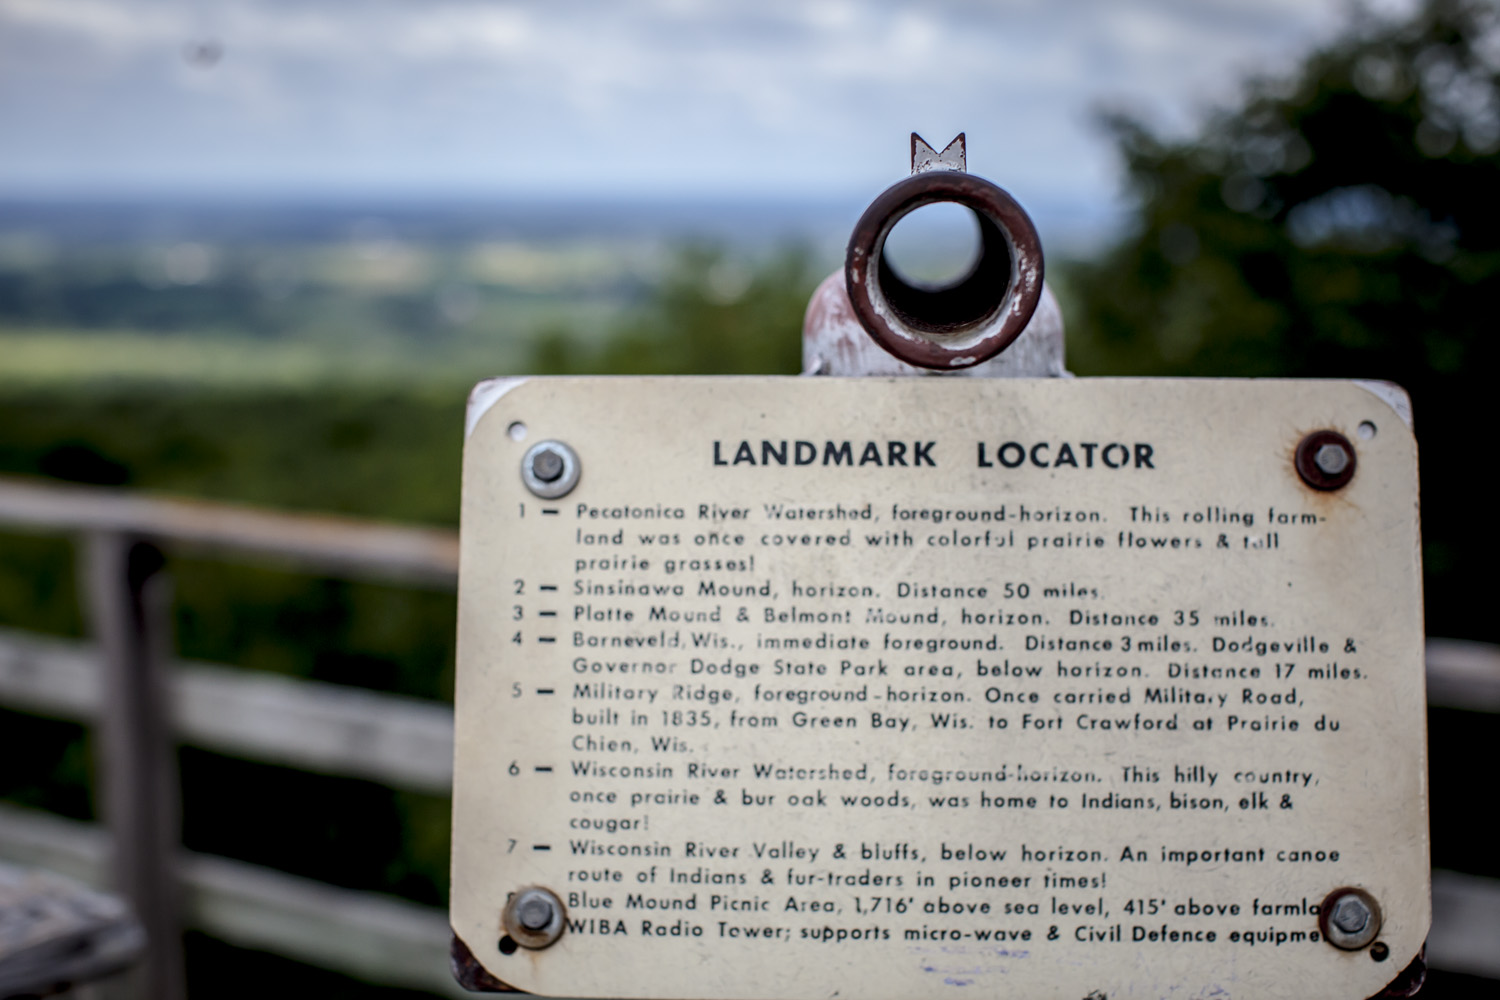 An observation tower in the Wisconsin river valley points to #6 of interesting geological landmarks. Where the buffalo roamed.